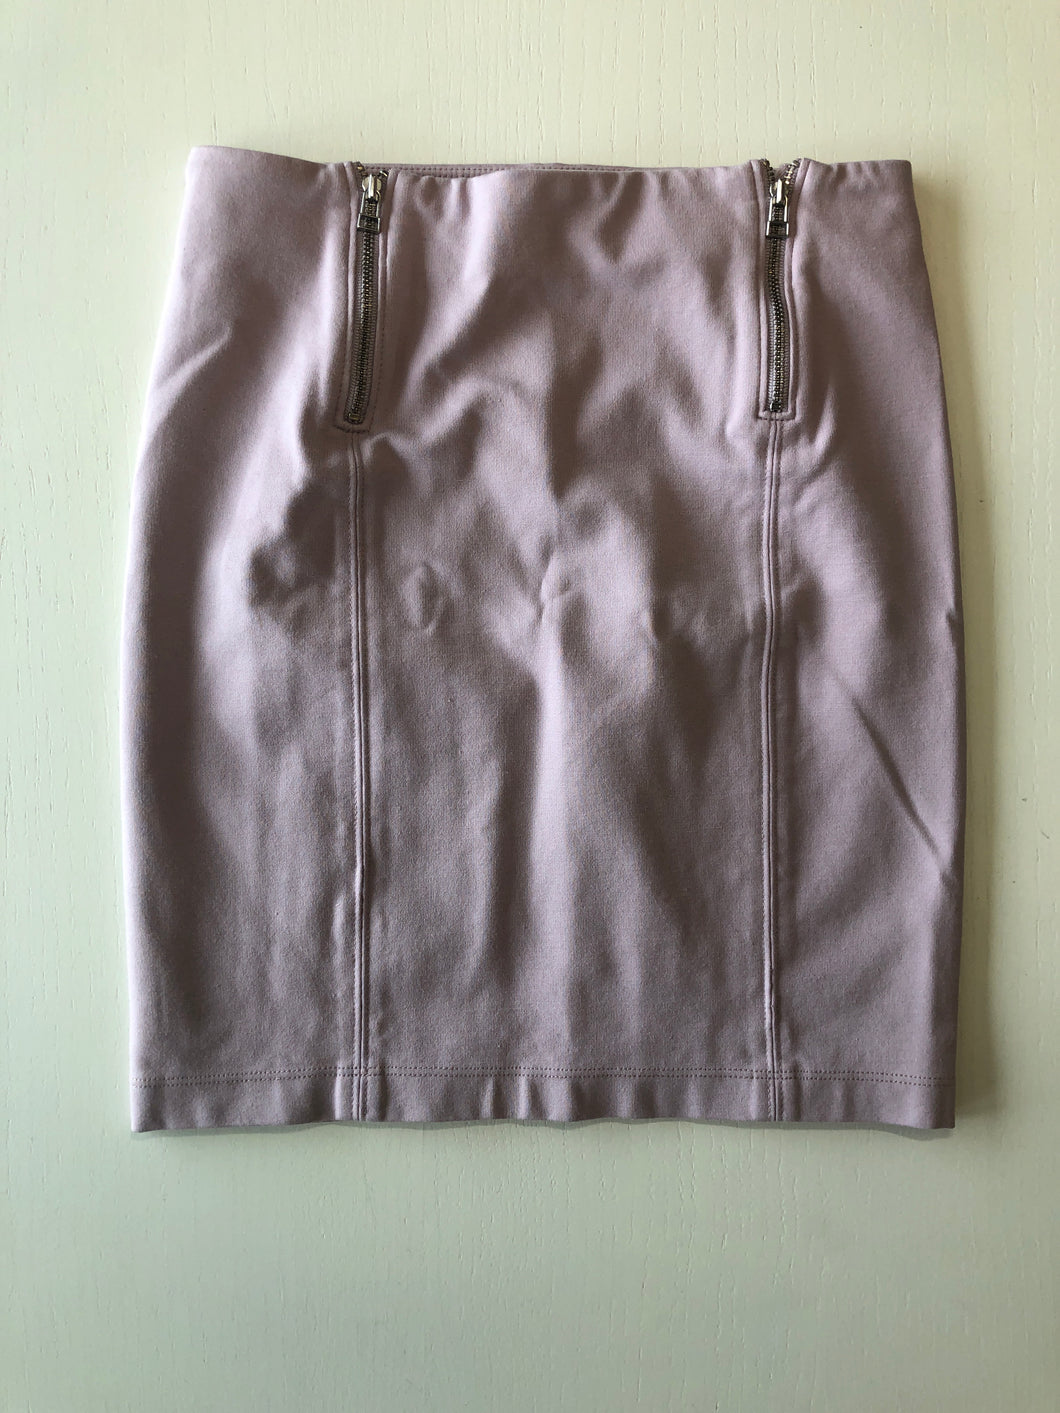 Gently Used Women's Sunday Best Skirt Size 2